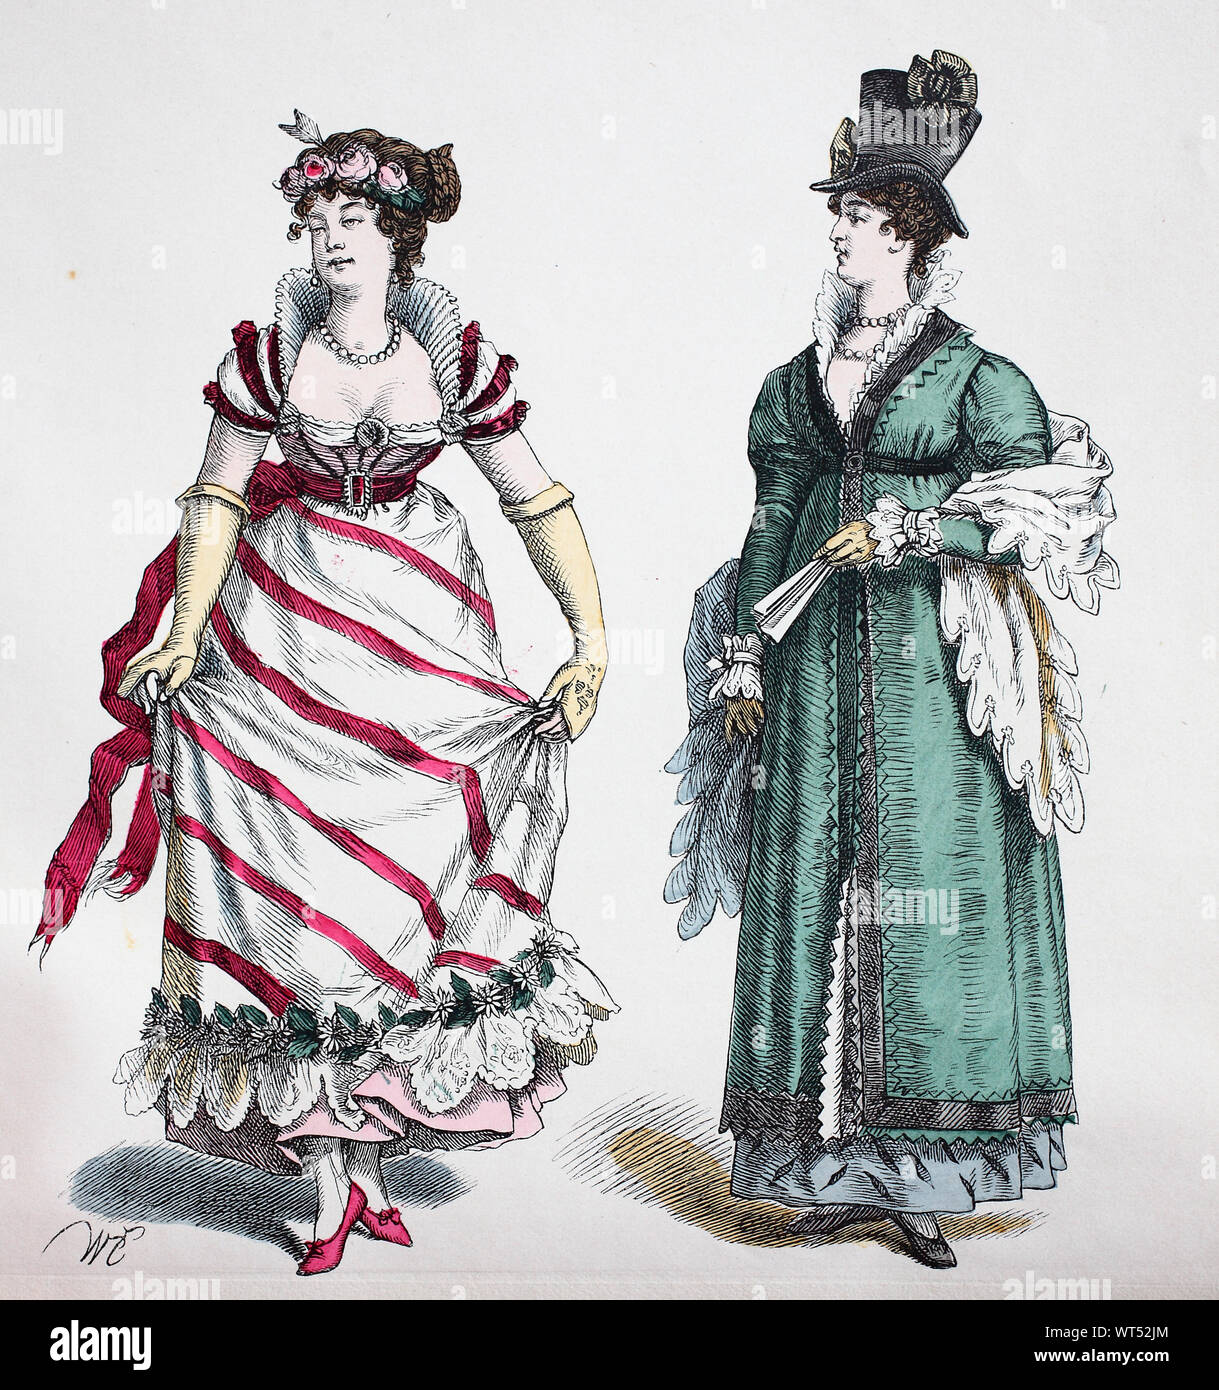 National Costume Clothes History Of The Costumes Lady In The Ball Dress And Lady In The Top Hat At The Imperial Time In 1810 Volkstracht Kleidung Geschichte Der Kostume Dame Im Ballkleid